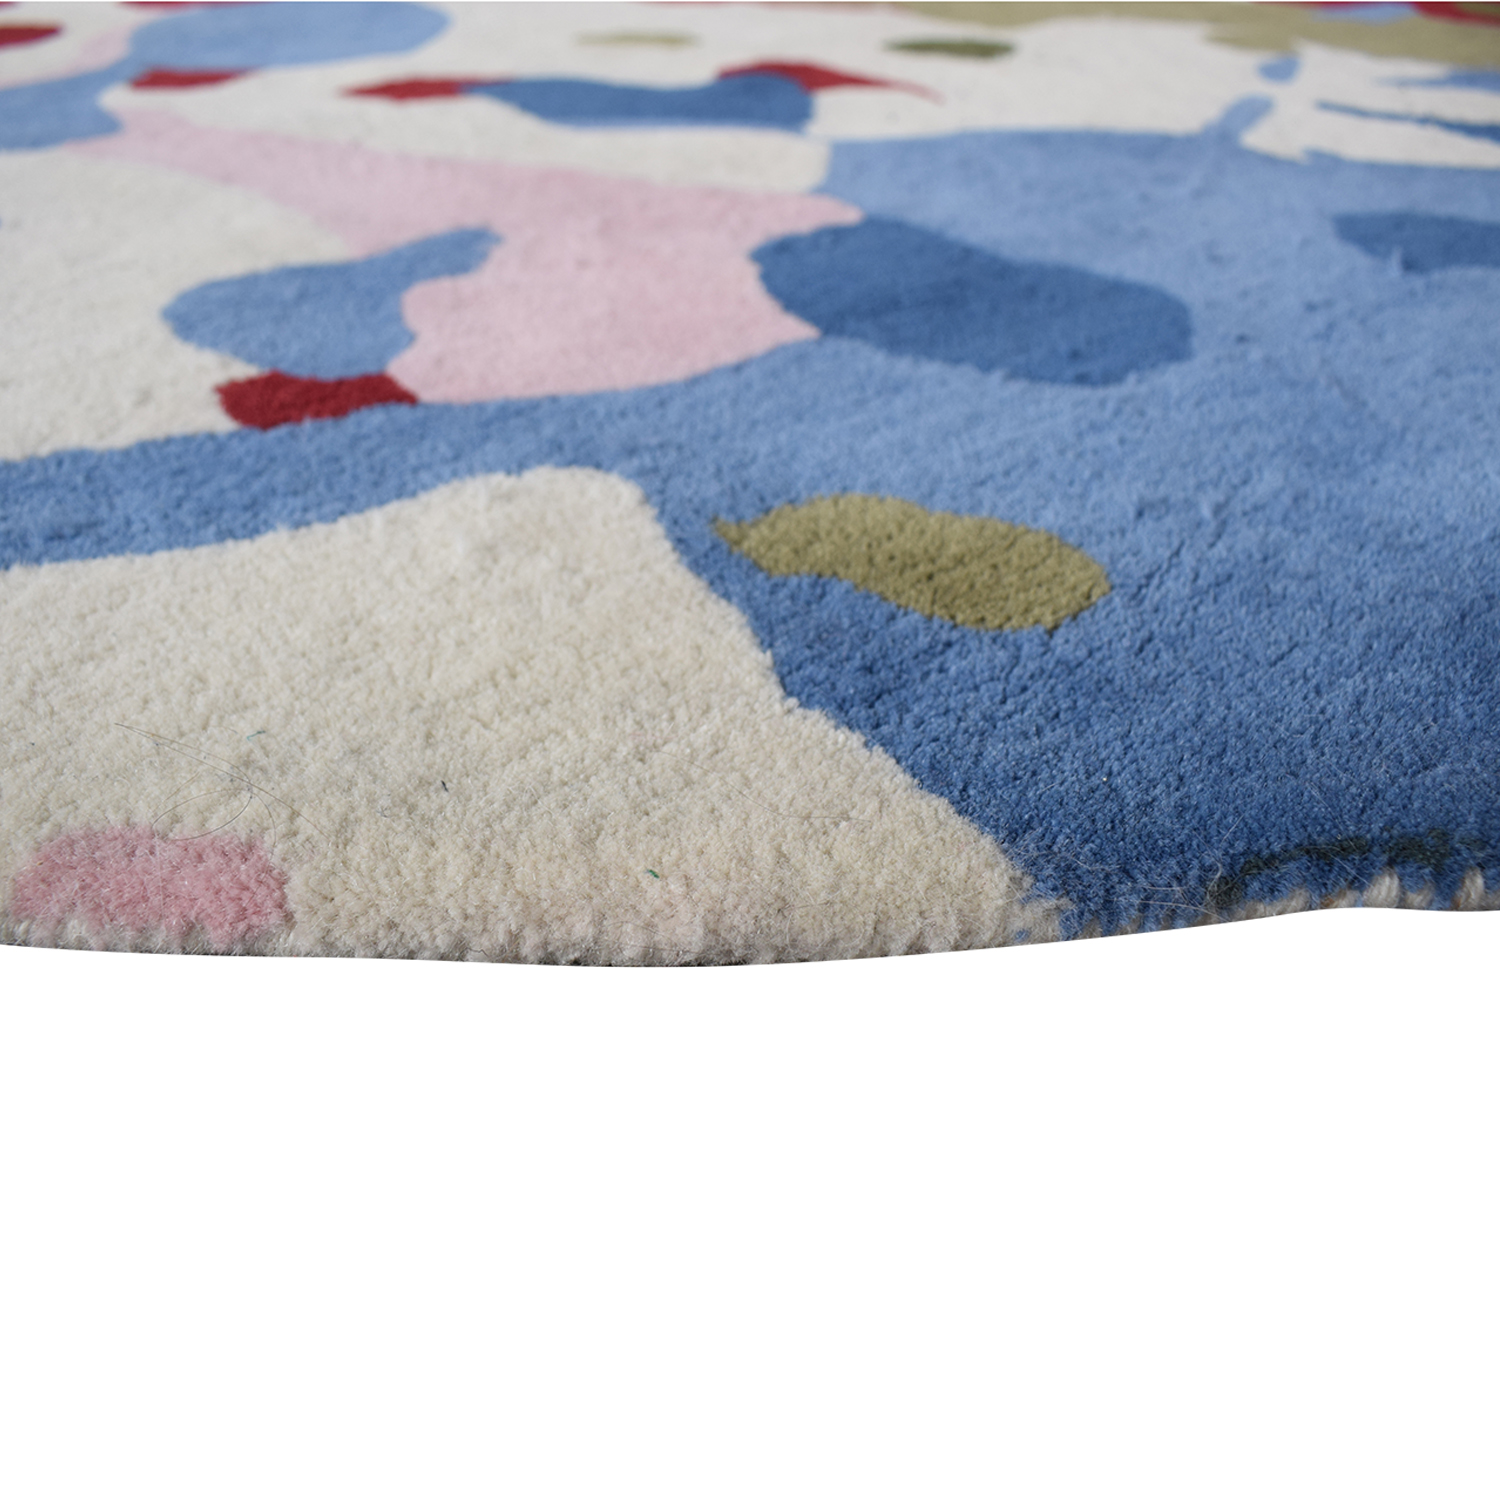 Obeetee Obeetee Round Multi-Colored Hand Tufted Rug